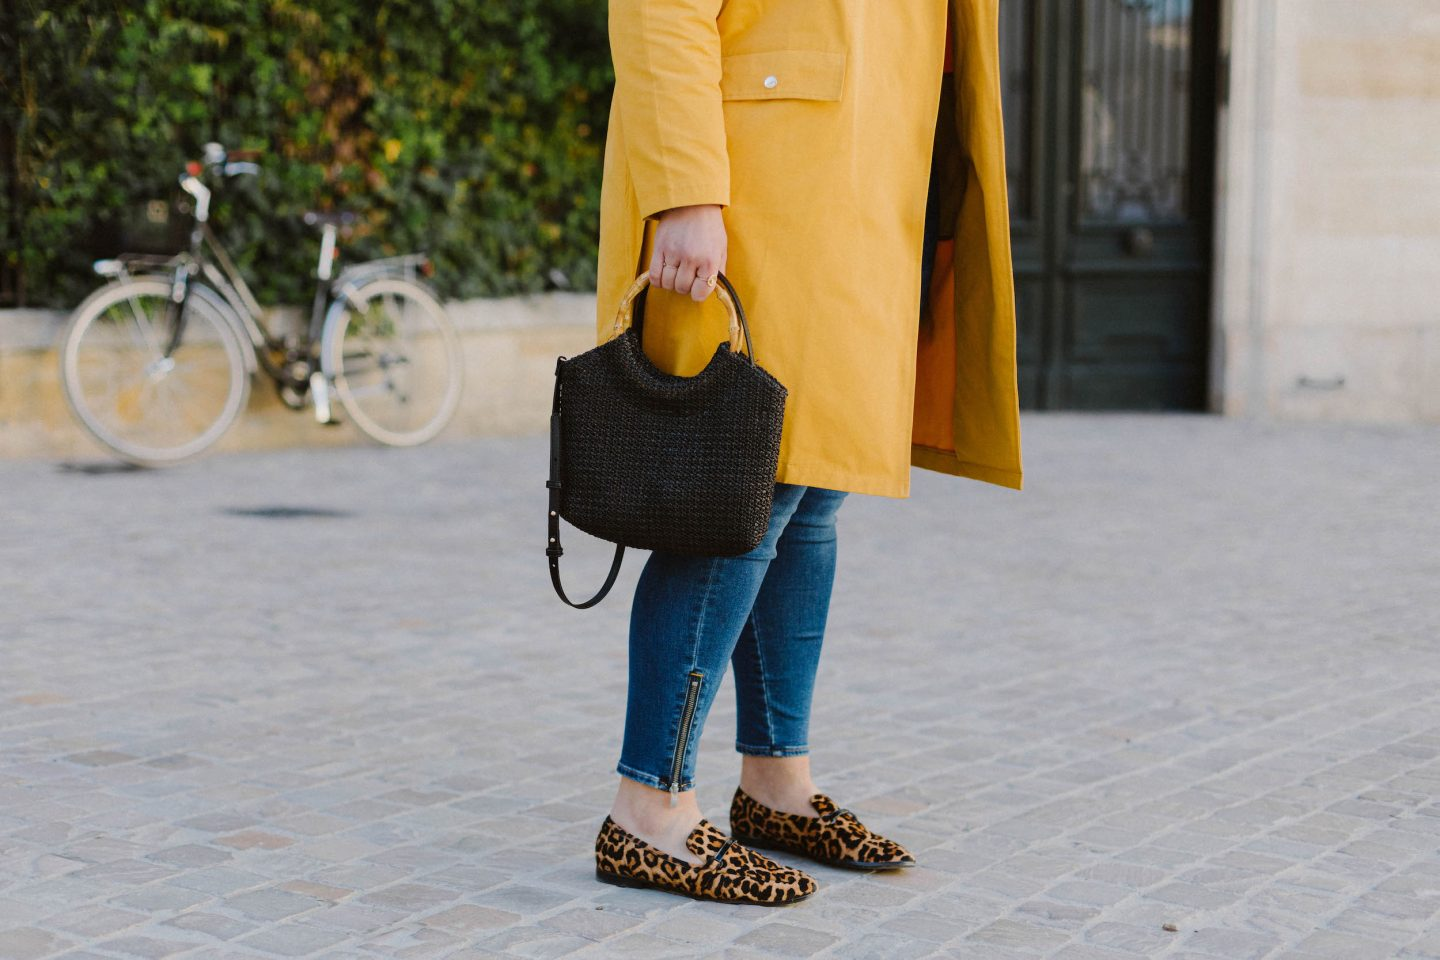 chaussures-leopard